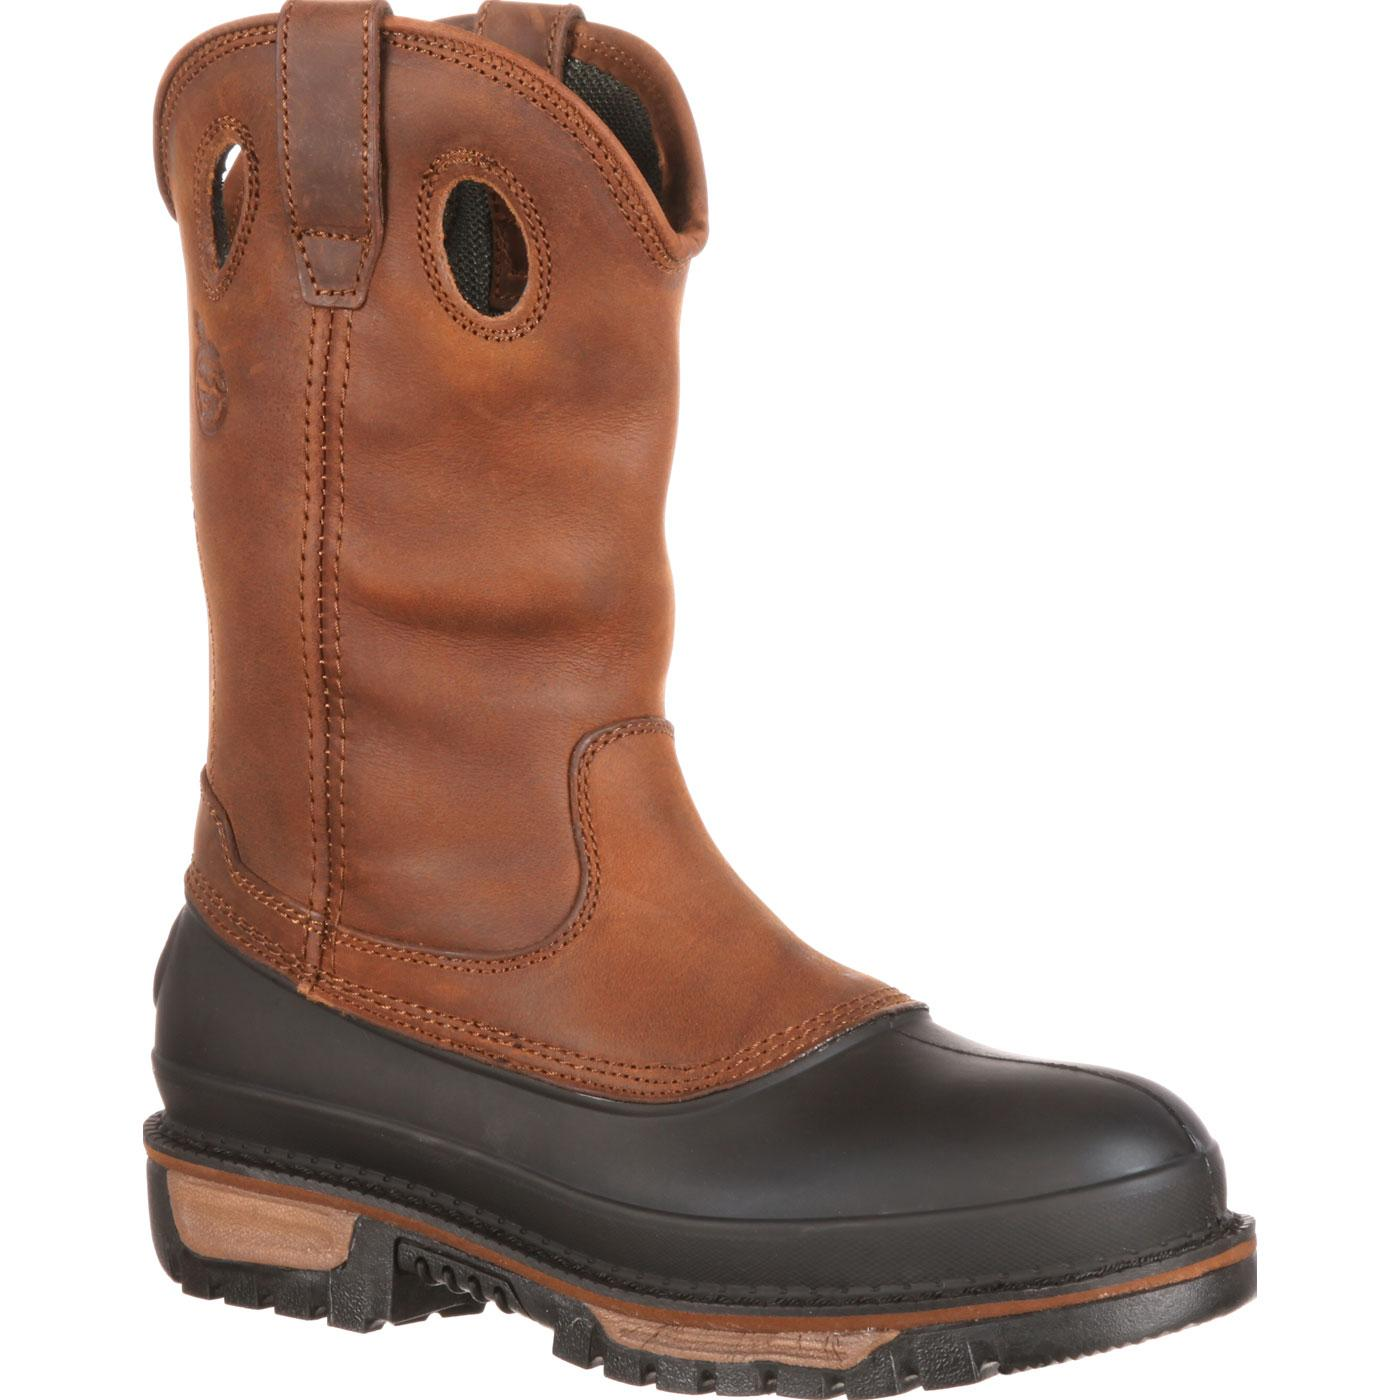 Buy Georgia Men's Wedge Farm & Ranch Boots - G and other Industrial & Construction Boots at ticketfinder.ga Our wide selection is eligible for free shipping and free returns.